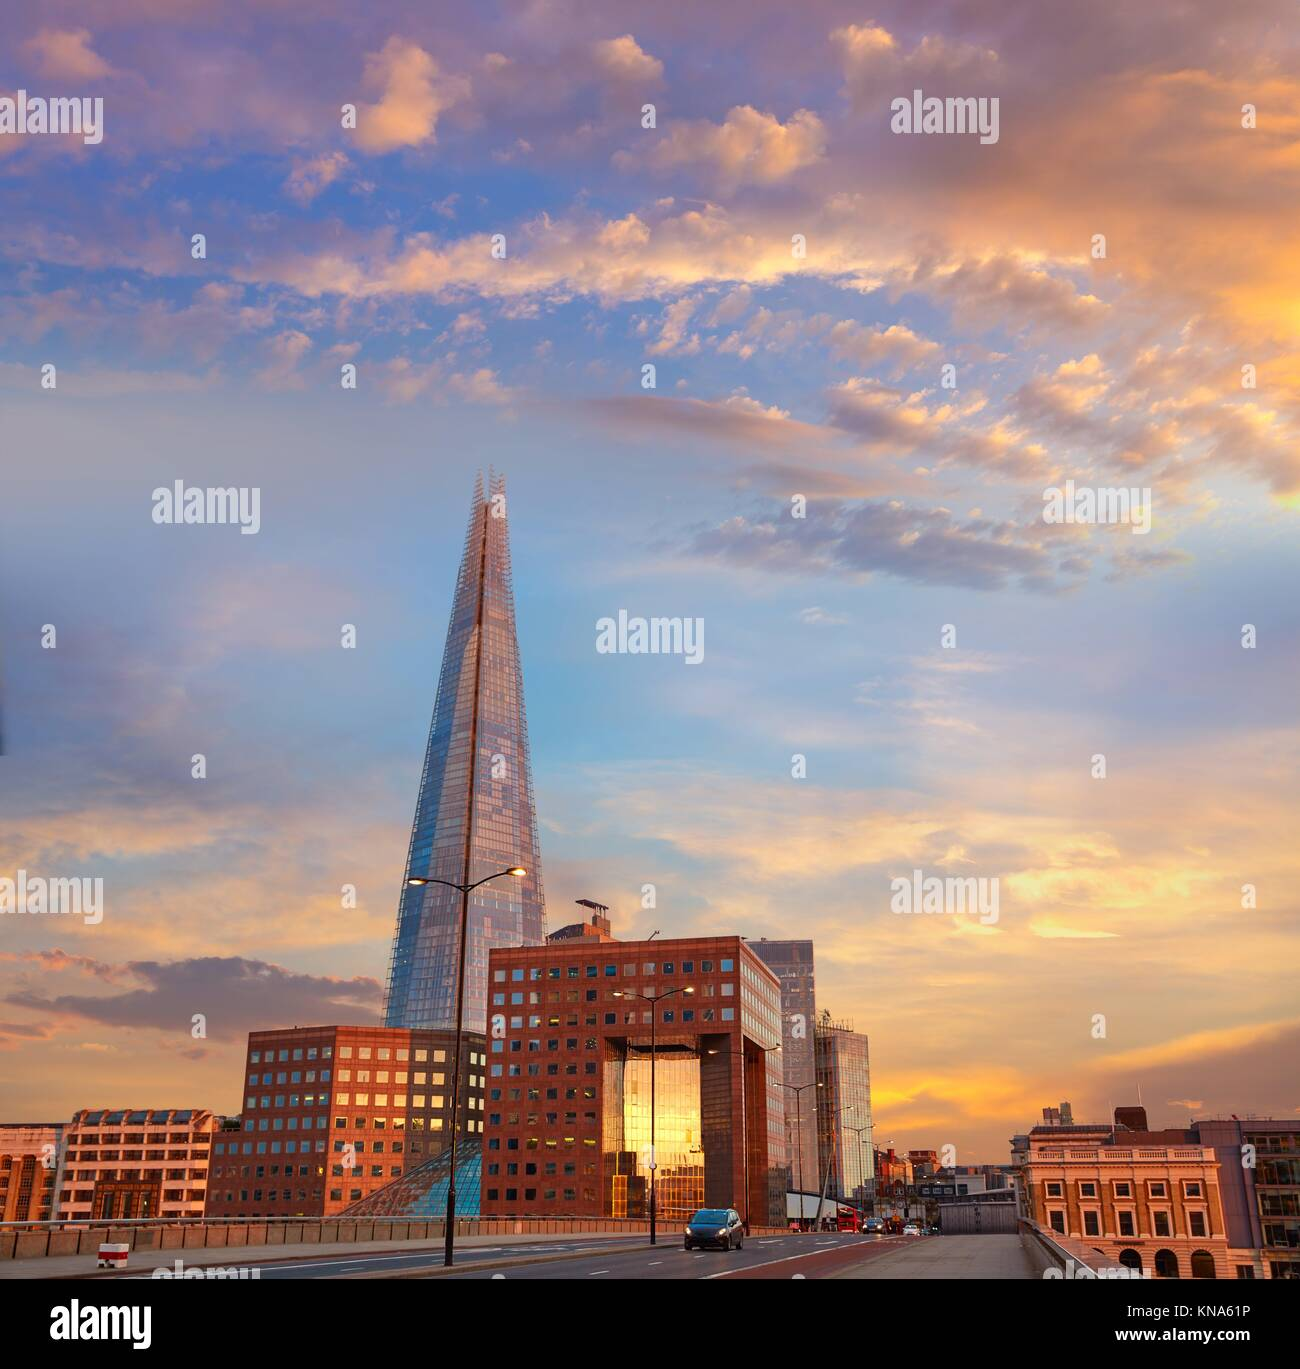 London The Shard Gebäude bei Sonnenuntergang in England. Stockbild